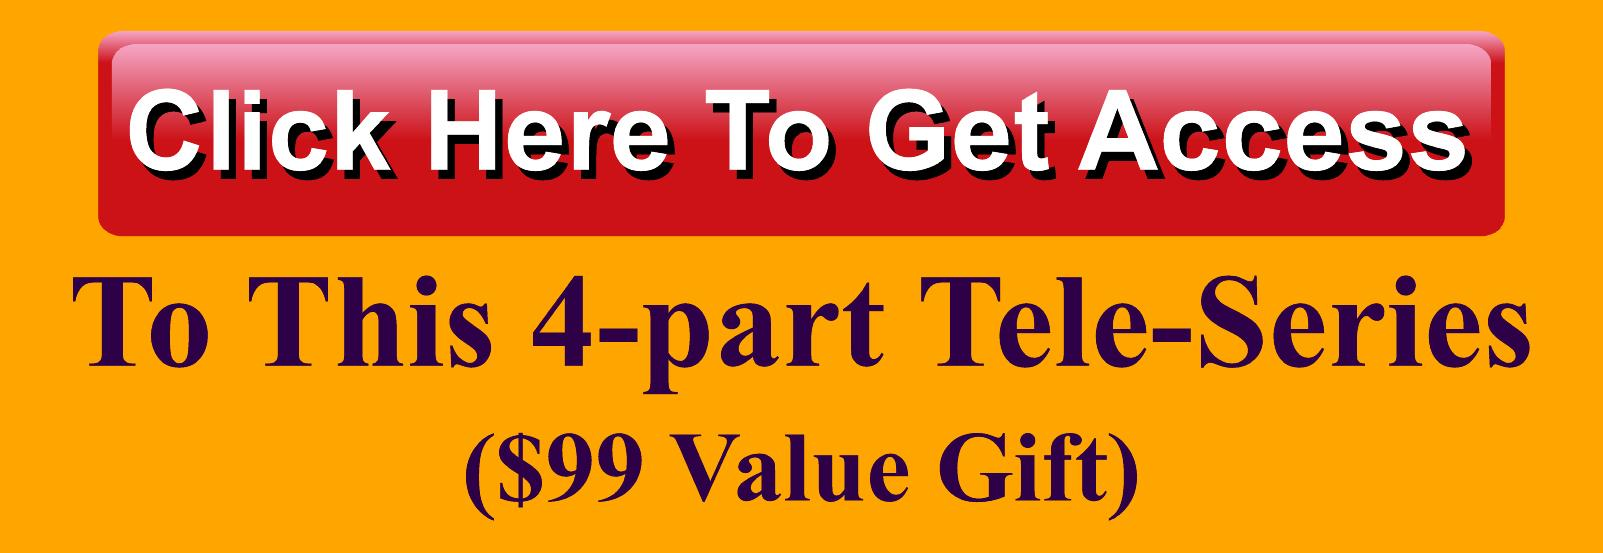 click_here-with-4-part-tele